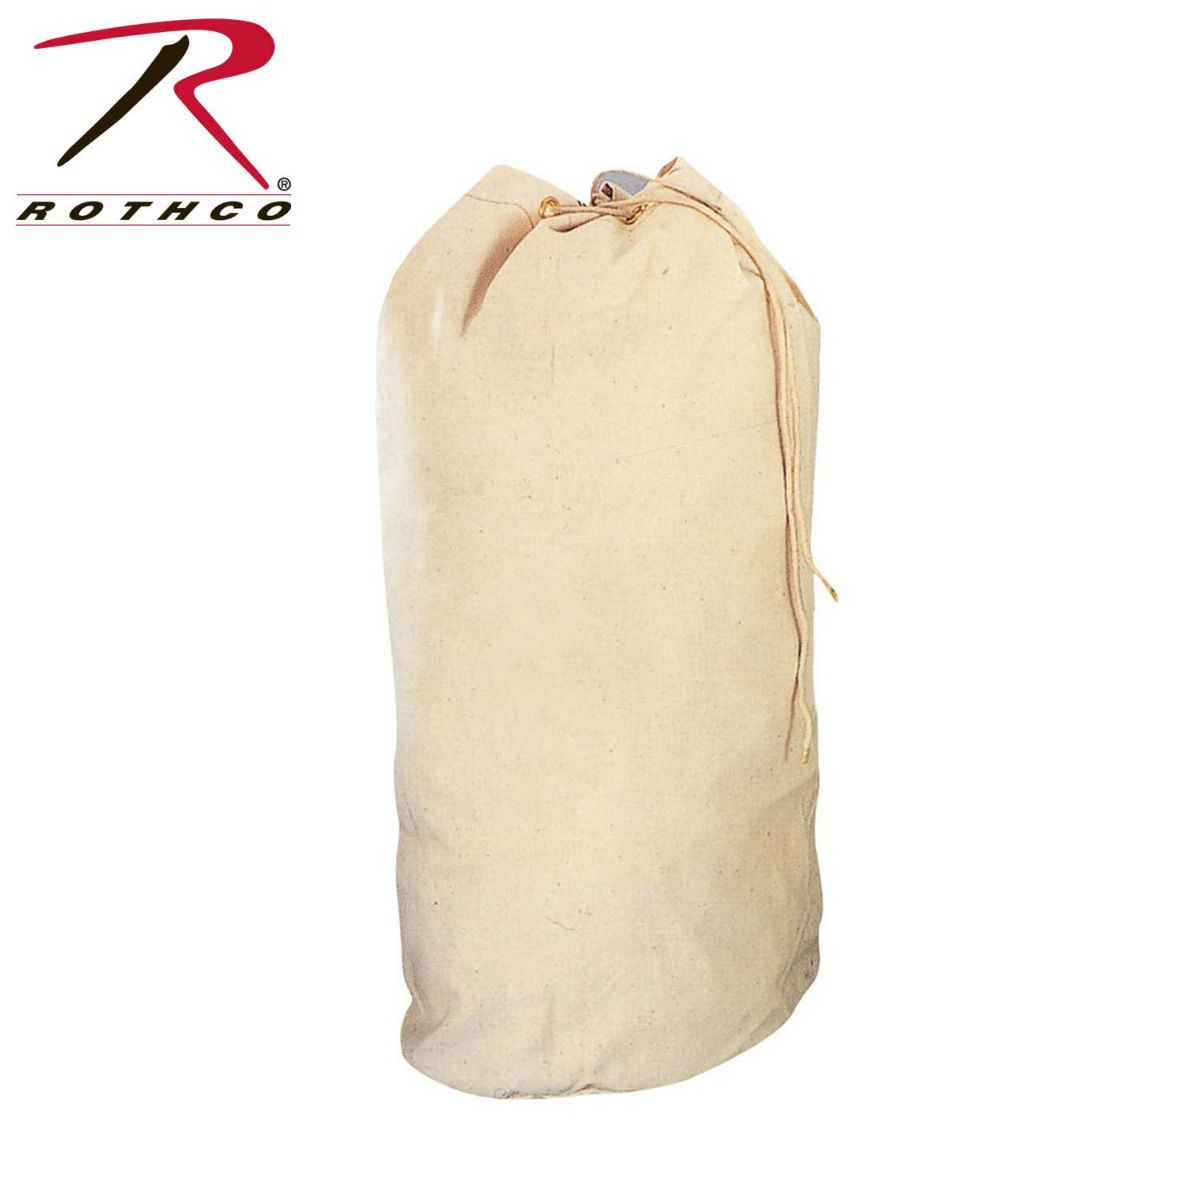 Details About Laundry Bag Heavyweight Canvas Us Navy Sea Bag